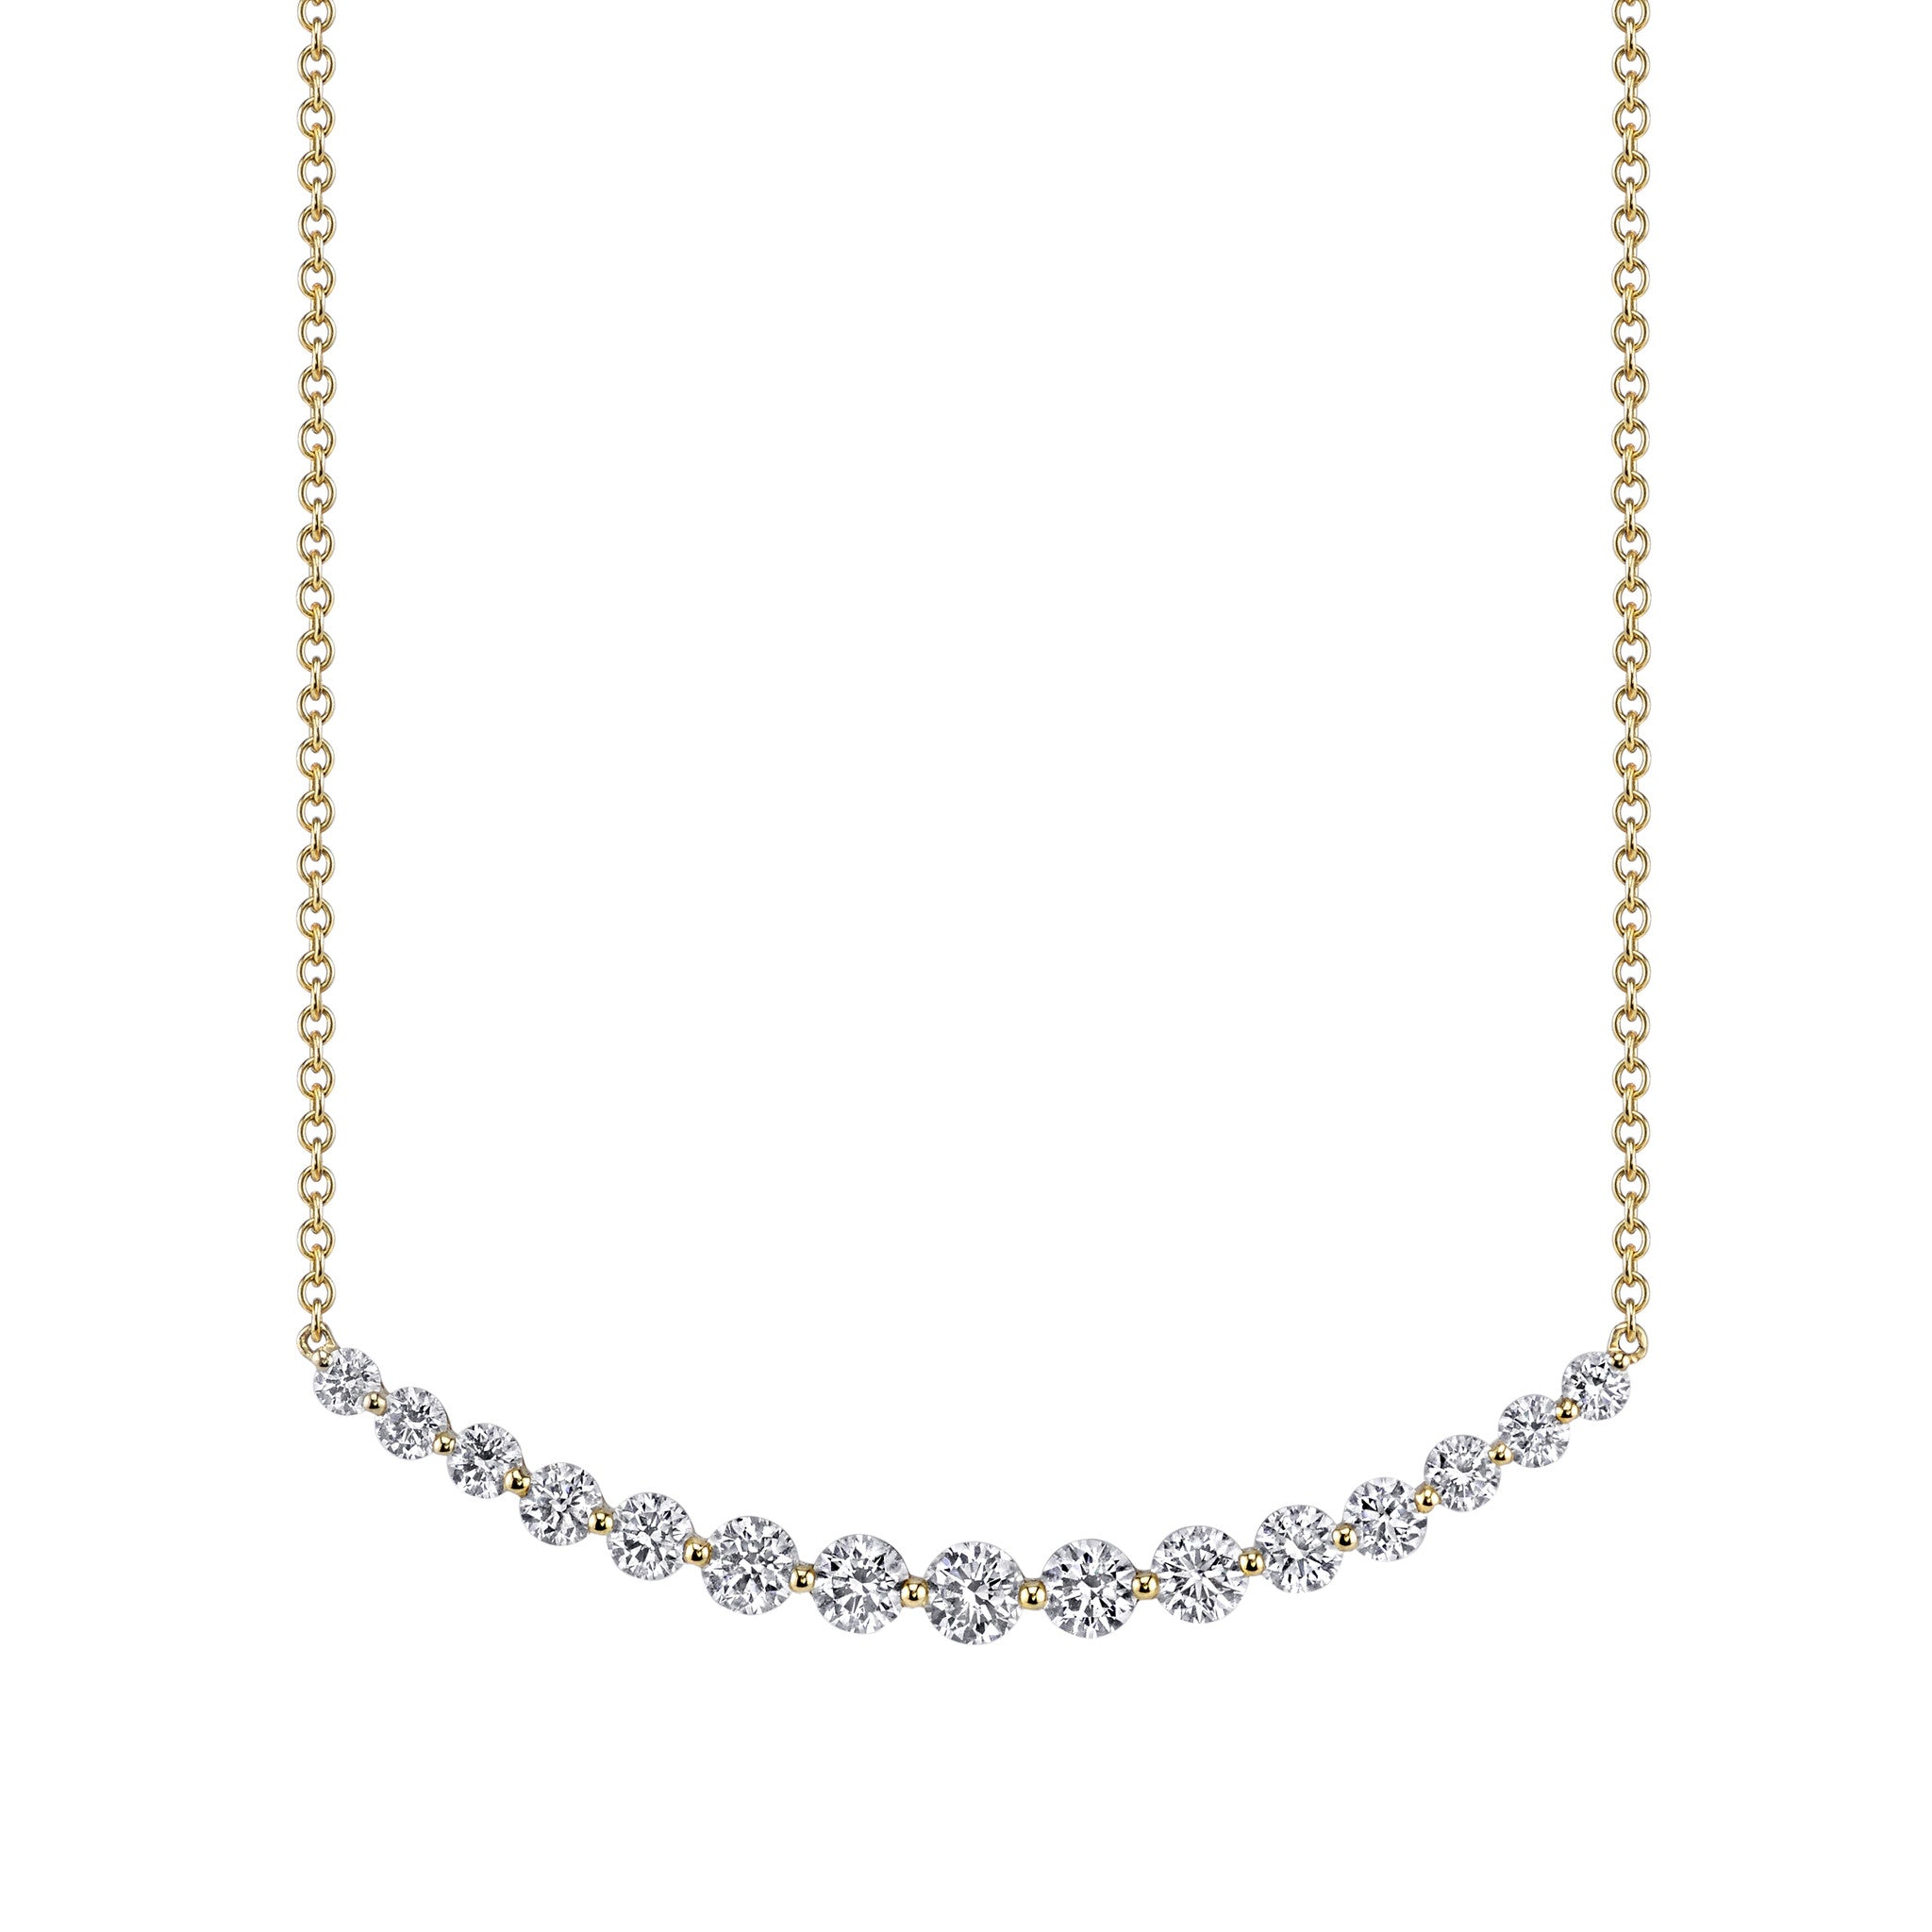 ece0236f6f1 CRESCENT DIAMOND NECKLACE